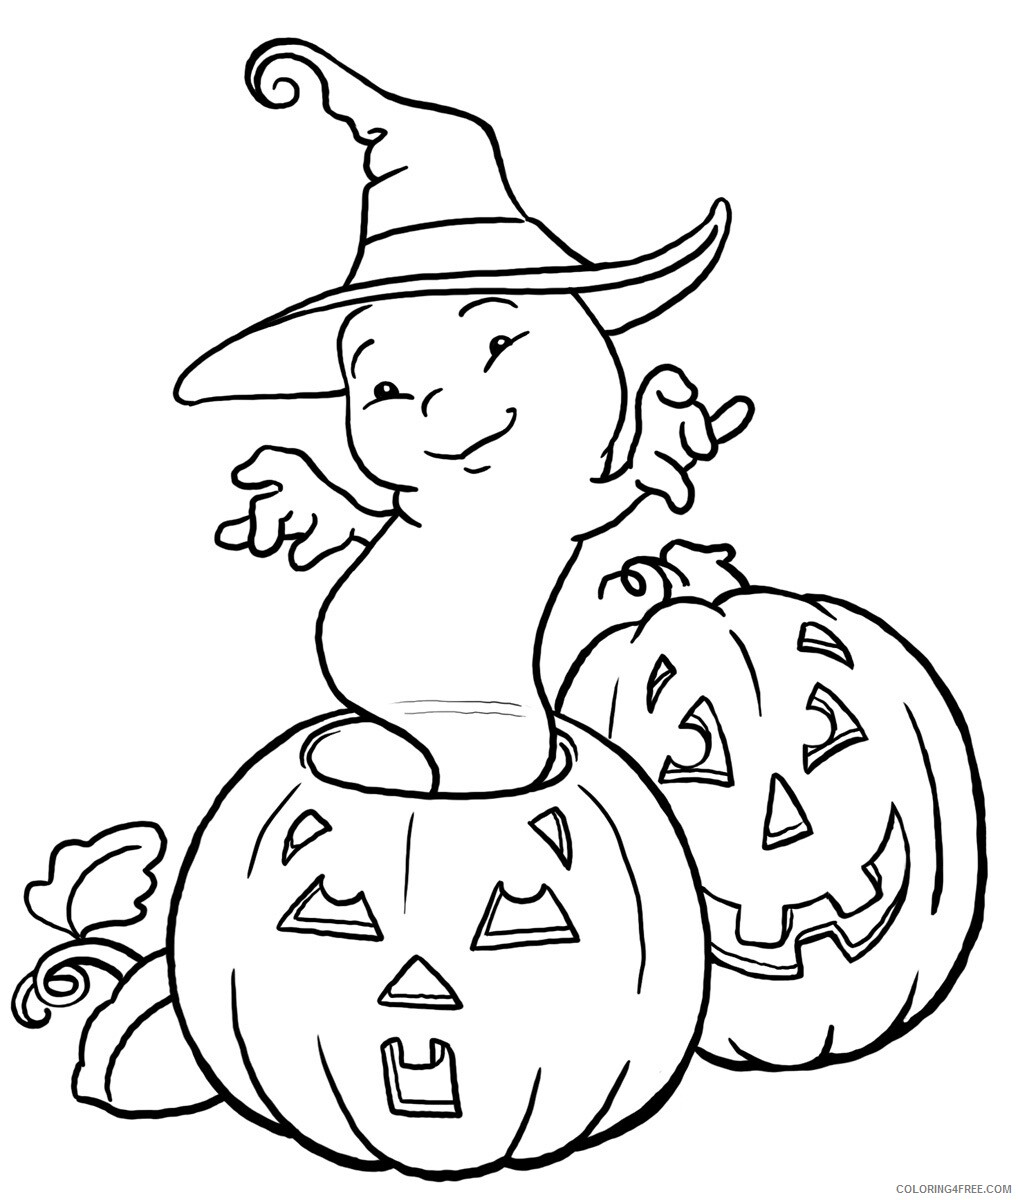 Ghost Coloring Pages Ghost For Kids Printable 2021 2822 Coloring4free